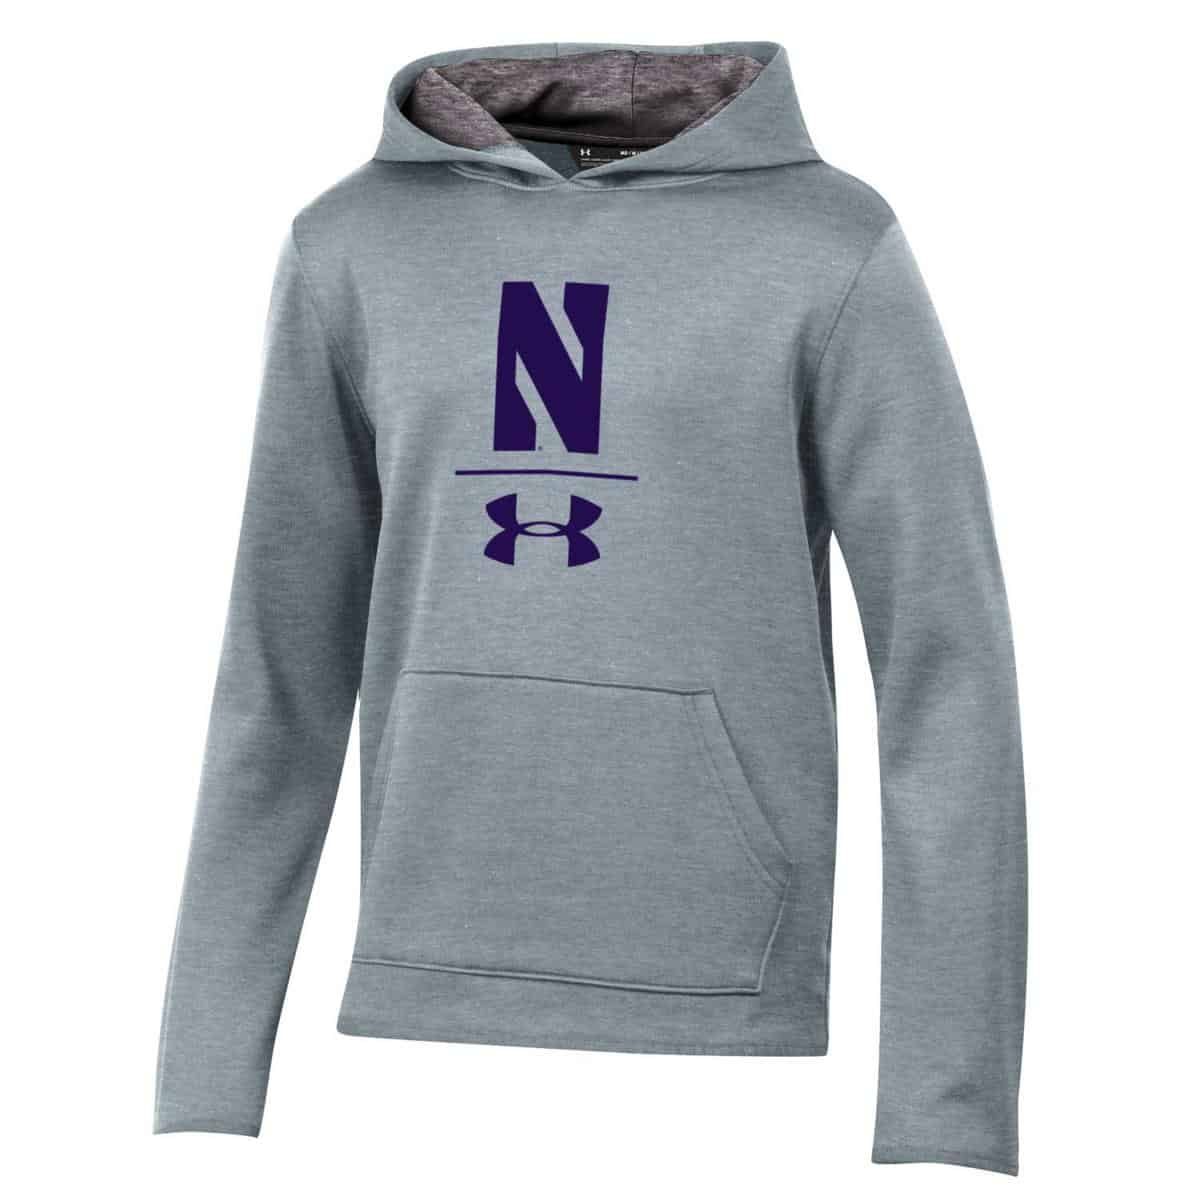 af492b7f3 Northwestern University Wildcats Youth Under Armour Tactical Tech™ Light  Grey Hooded Sweatshirt with Stylized N